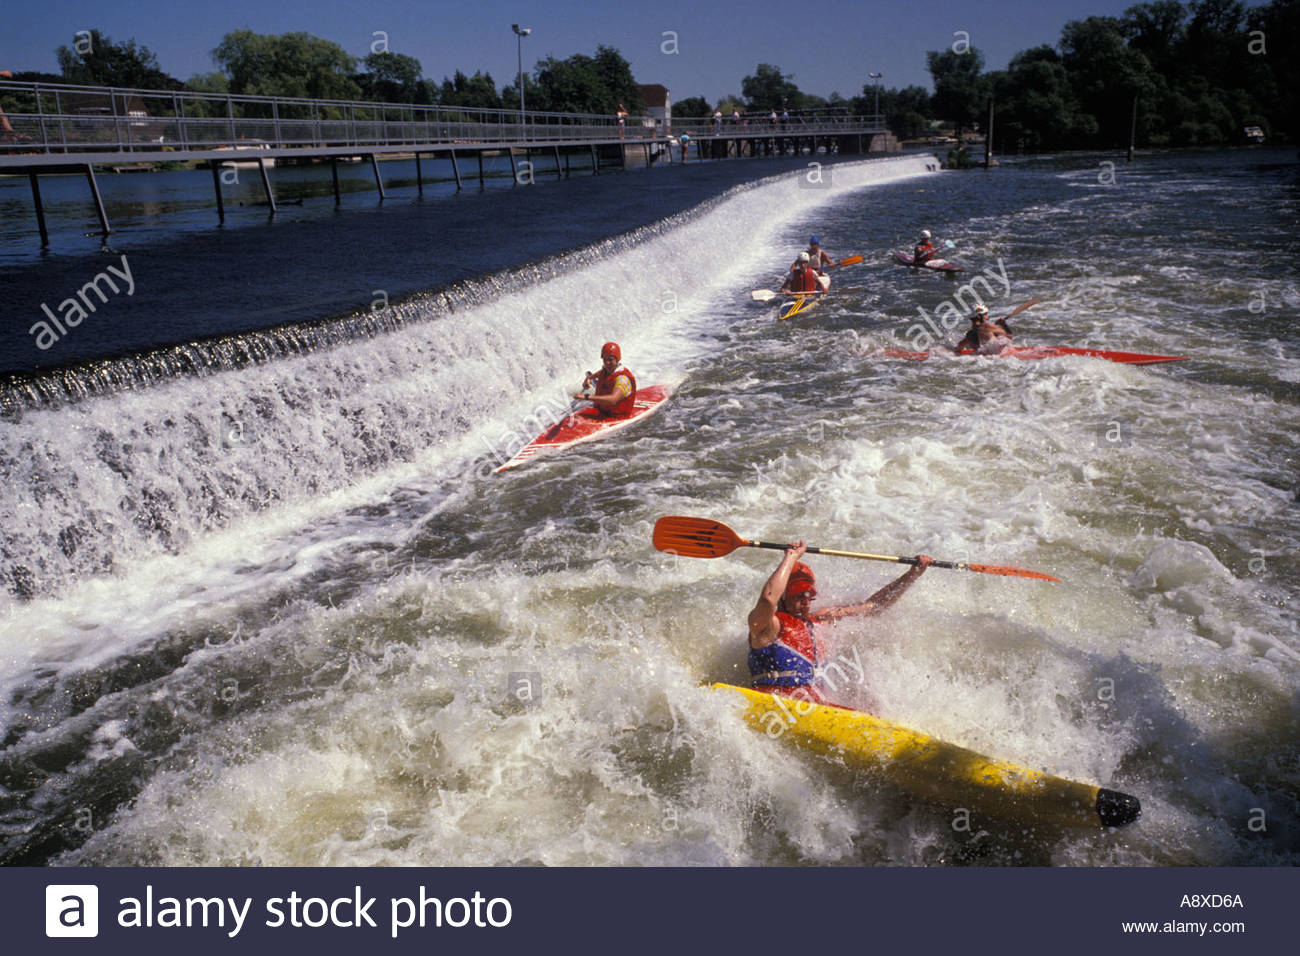 Kayaking at Hambleden Lock, UK - Stock Image